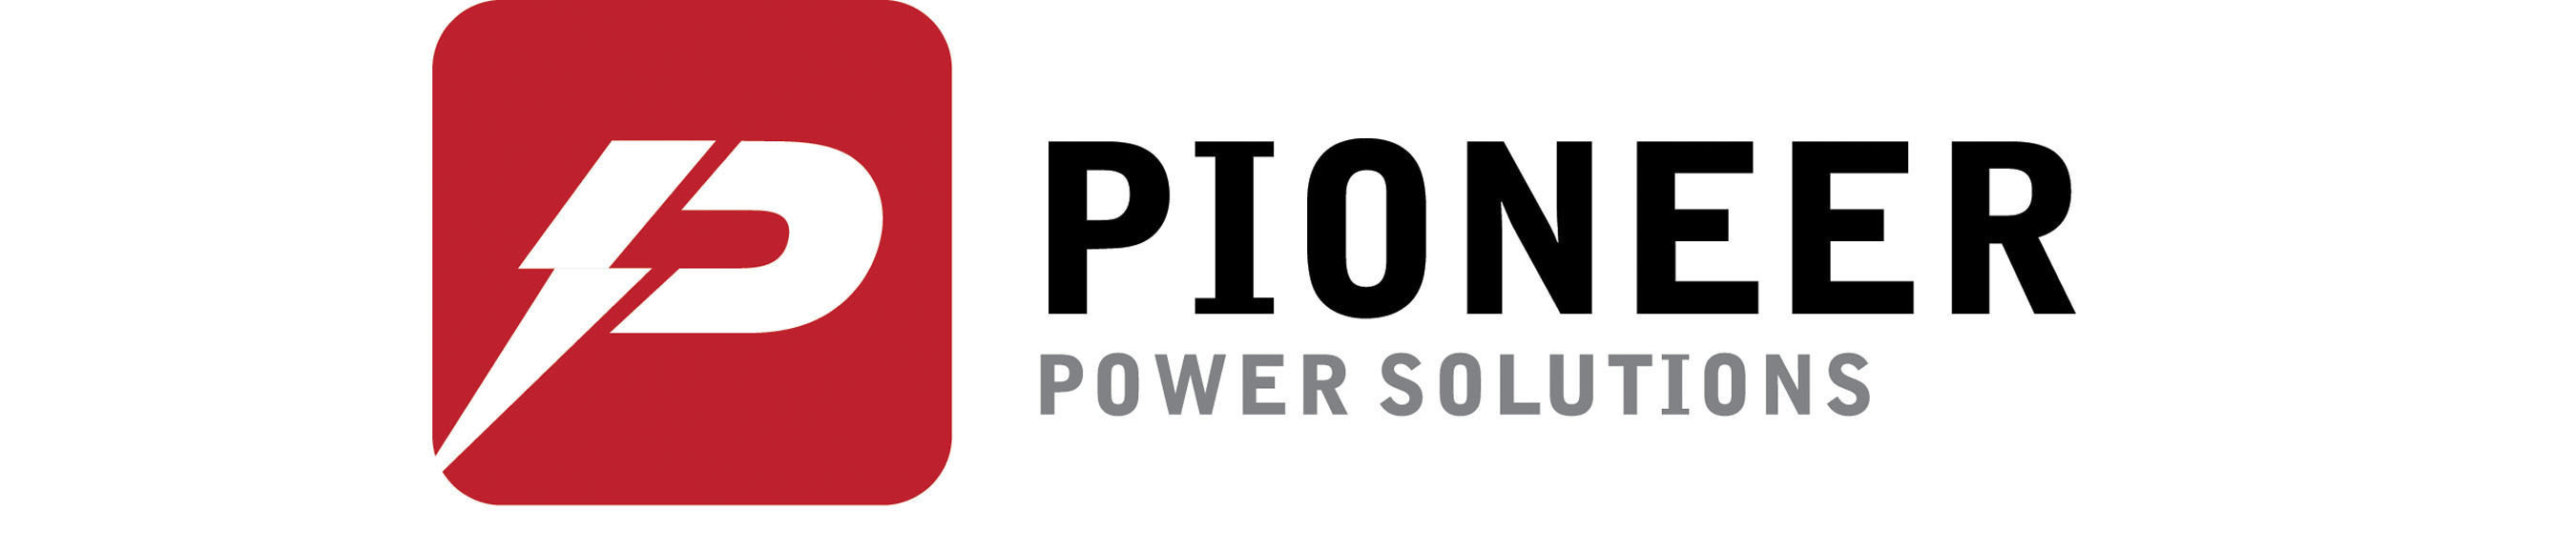 Pioneer Power Solutions, Inc.